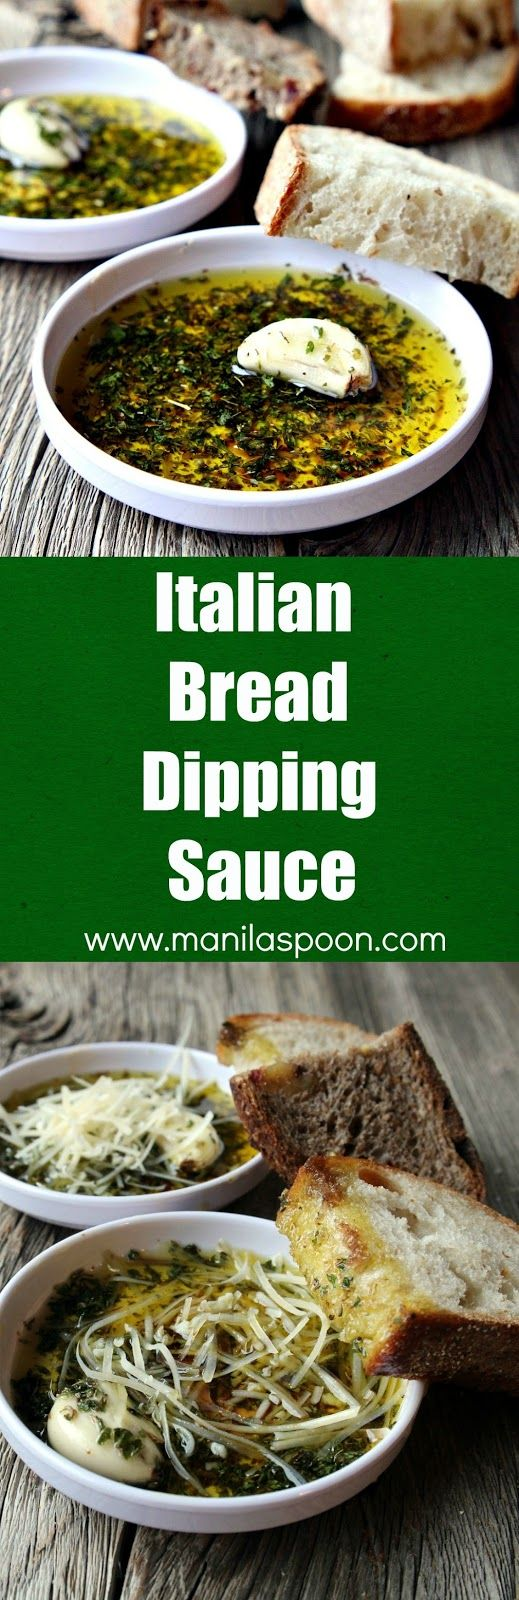 Restaurant-style olive oil dipping sauce with Italian herbs and balsamic vinegar perfect for dipping your favorite crusty bread. Mix it up with your favorite herbs and add a spicy kick to create your own flavor blend. Italian Bread Dipping Oil (Sauce) - Appetizer, Game Day, holiday| manilaspoon.com  #TurkishCuisine #ItalianCuisine #ThaiCuisine #FrenchCuisine #JapaneseCuisine #LebaneseCuisine #SpanishCuisine #GermanCuisine #KoreanCuisine #SouthAfricanCuisine #AustralianCuisine…